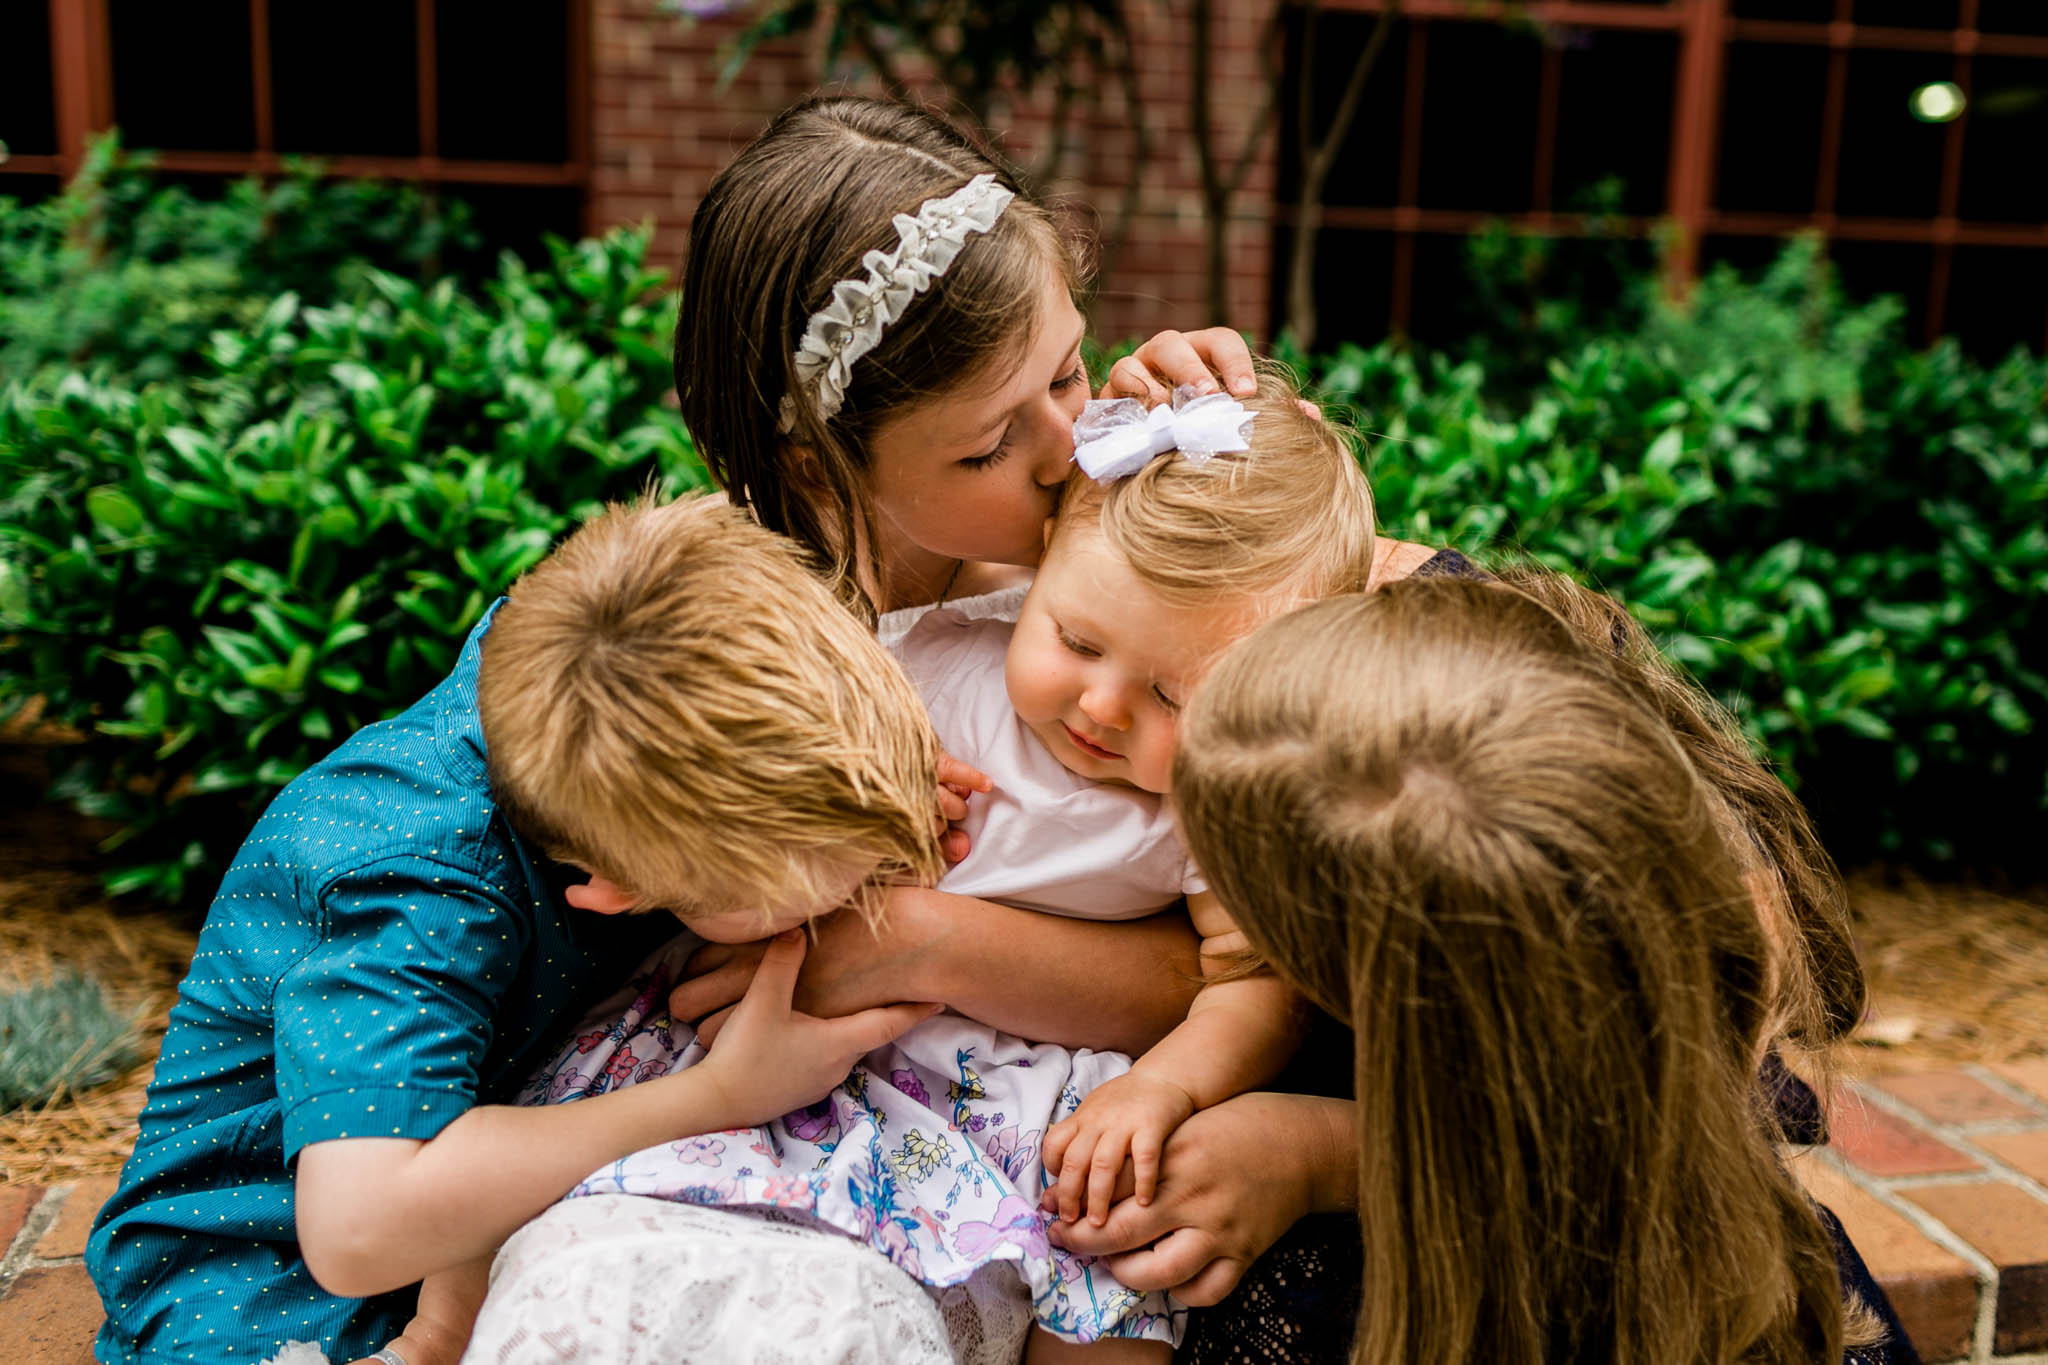 Durham Family Photographer | By G. Lin Photography | Candid sibling photo at American Tobacco Campus